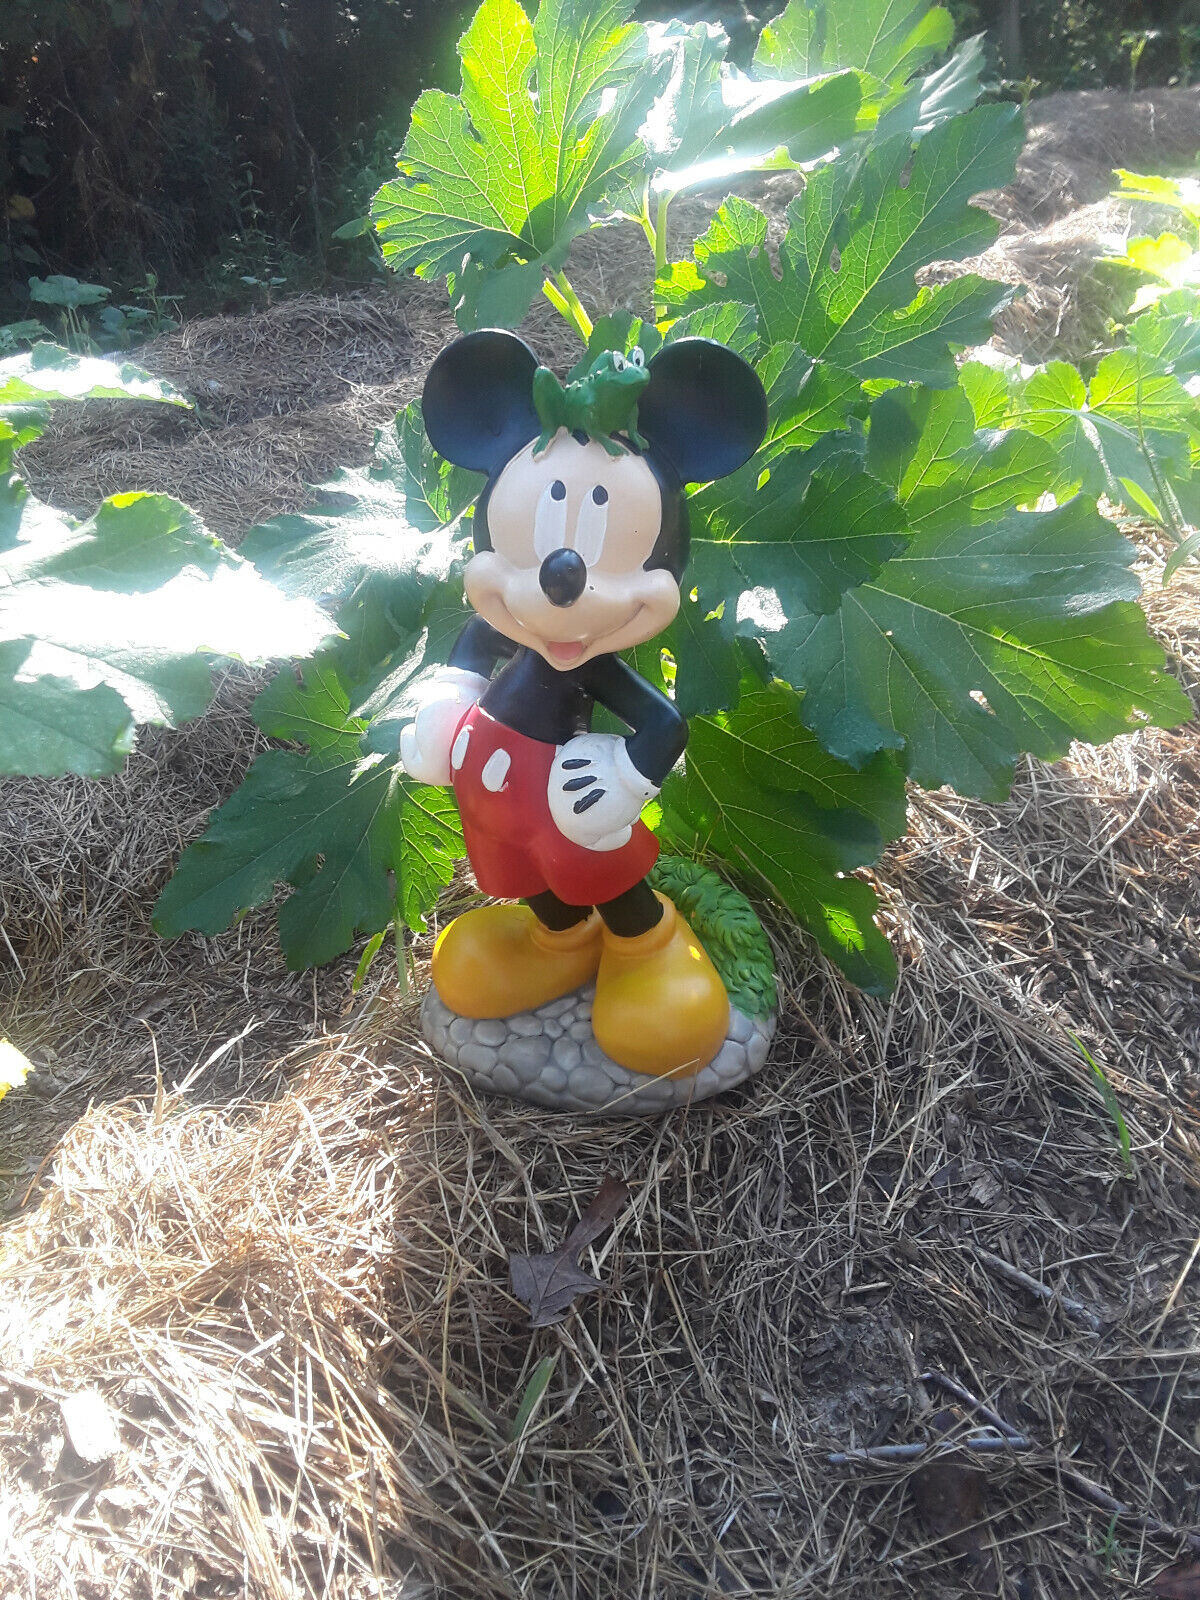 Mickey Mouse Garden Statue Or Home Decor With 10 Frog On Head